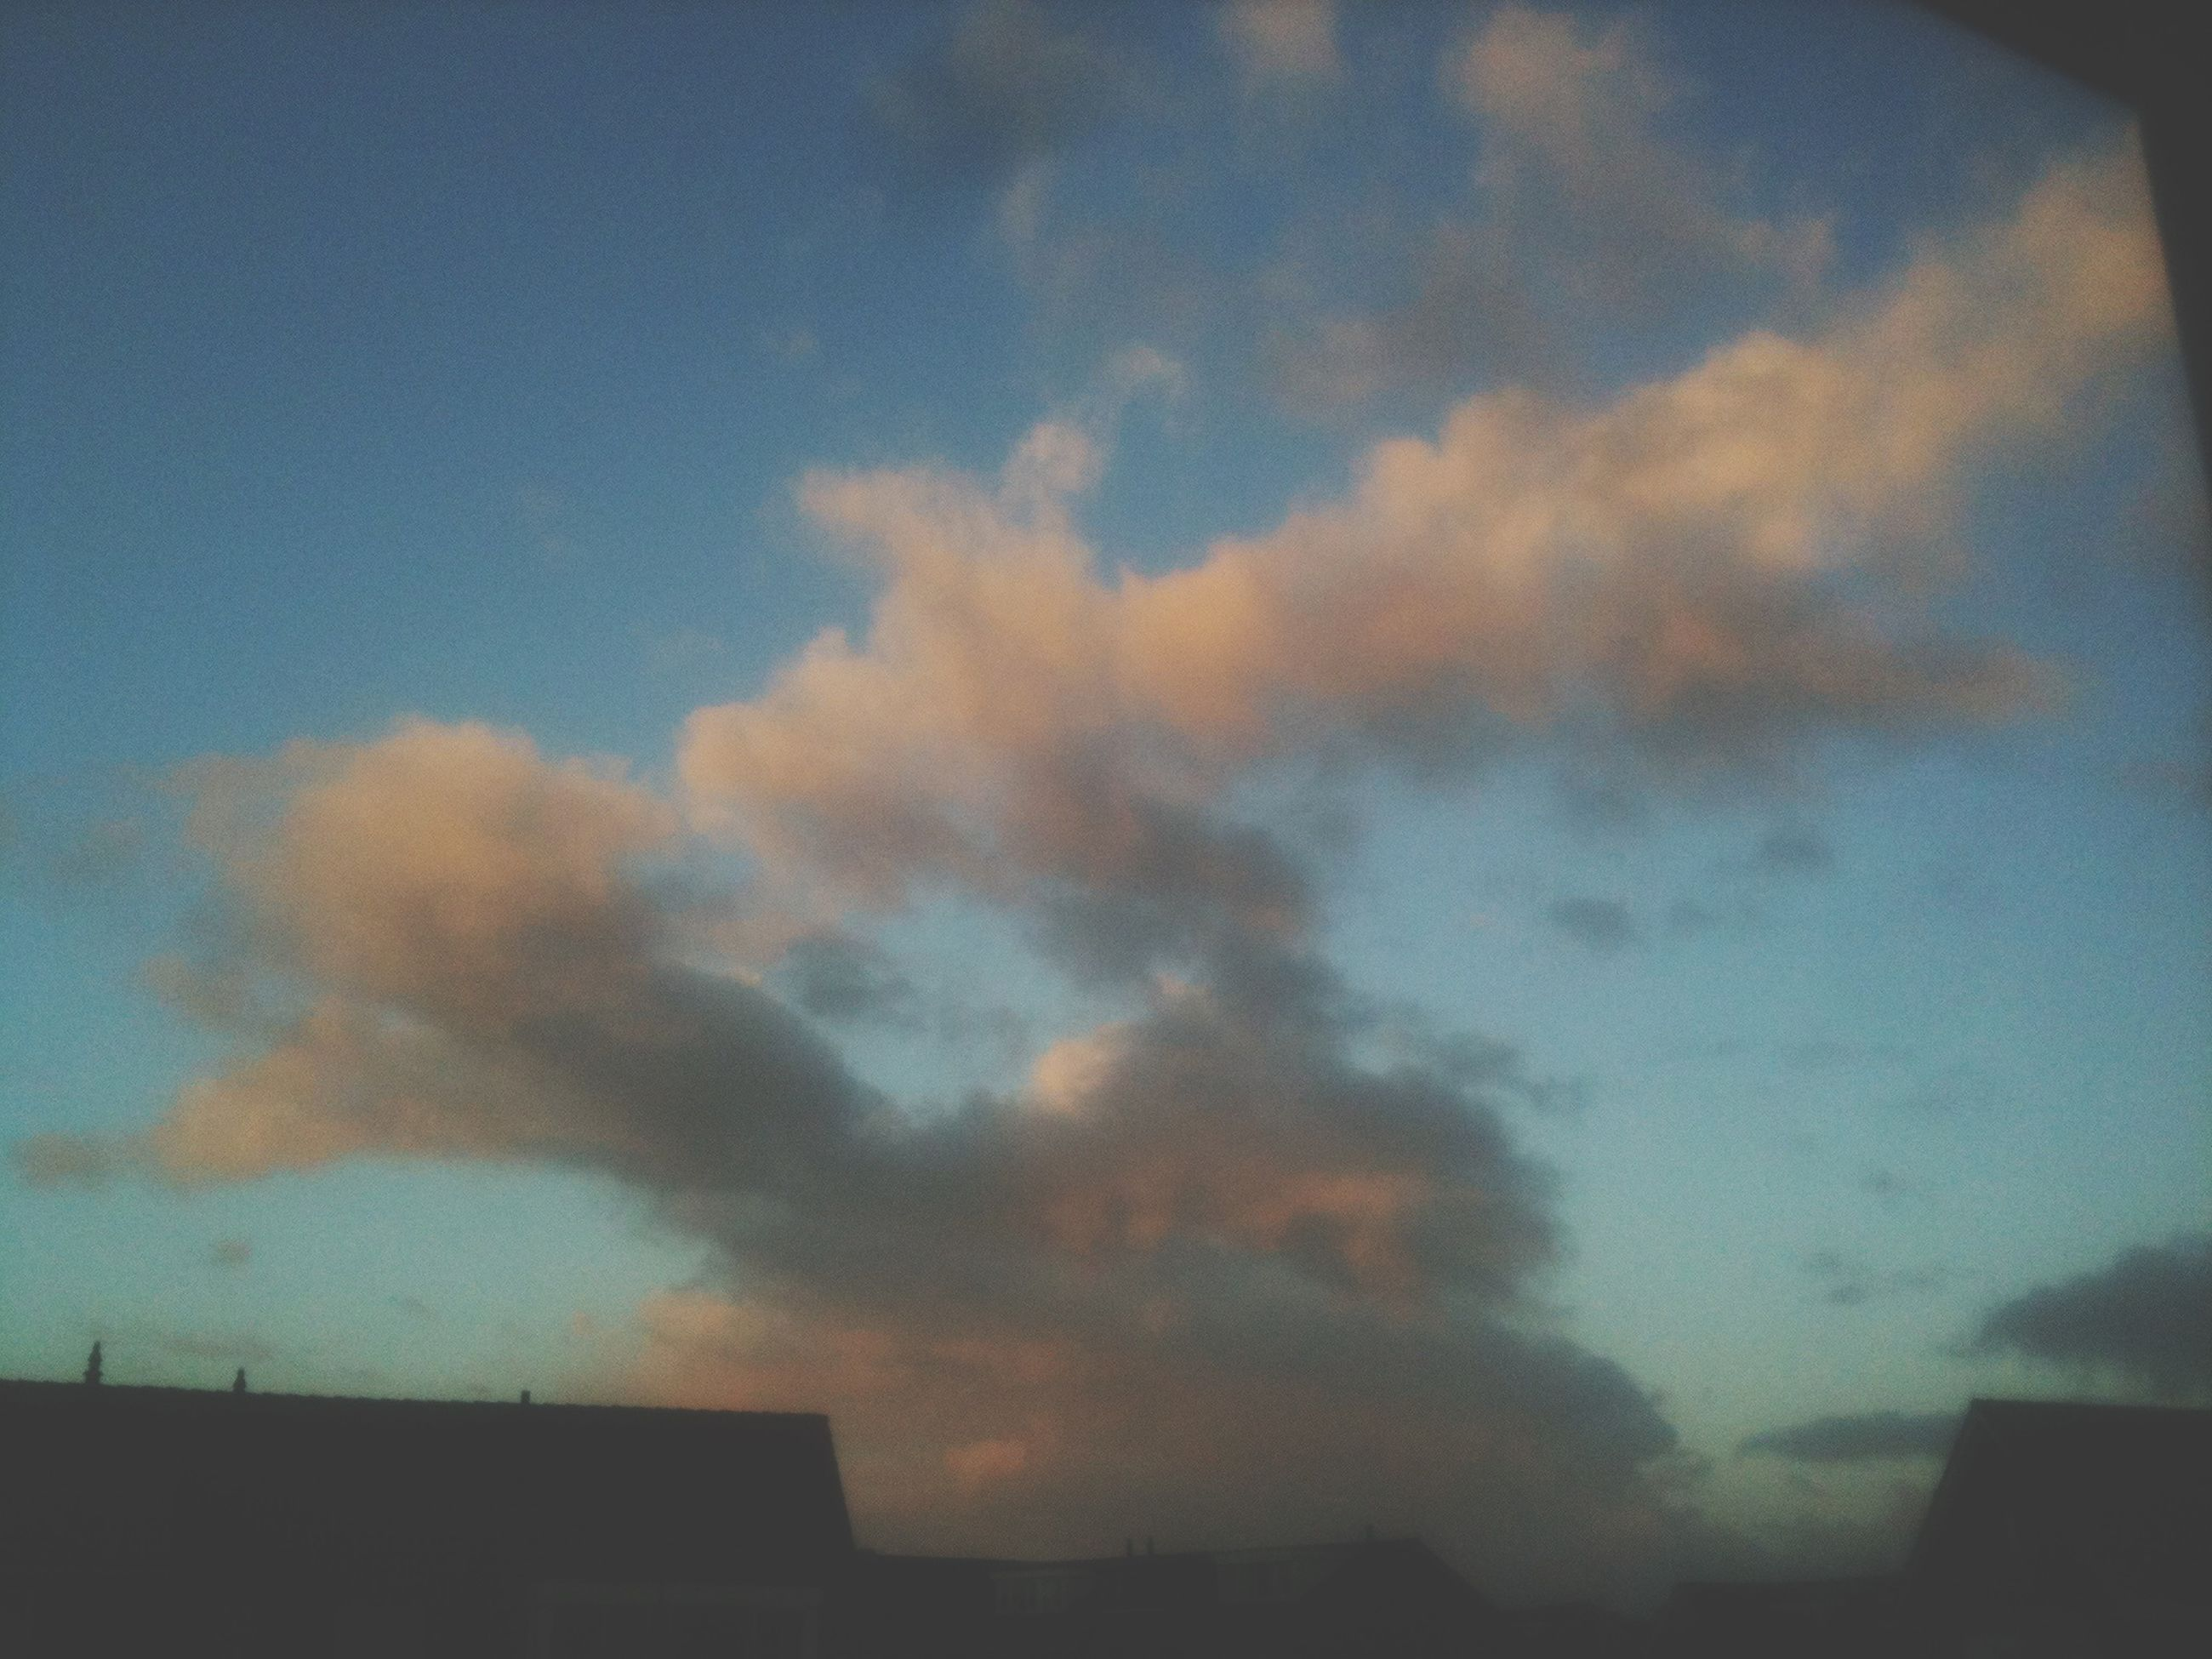 sky, cloud - sky, low angle view, cloudy, building exterior, architecture, built structure, weather, sunset, cloud, beauty in nature, nature, dusk, scenics, outdoors, no people, silhouette, house, blue, overcast